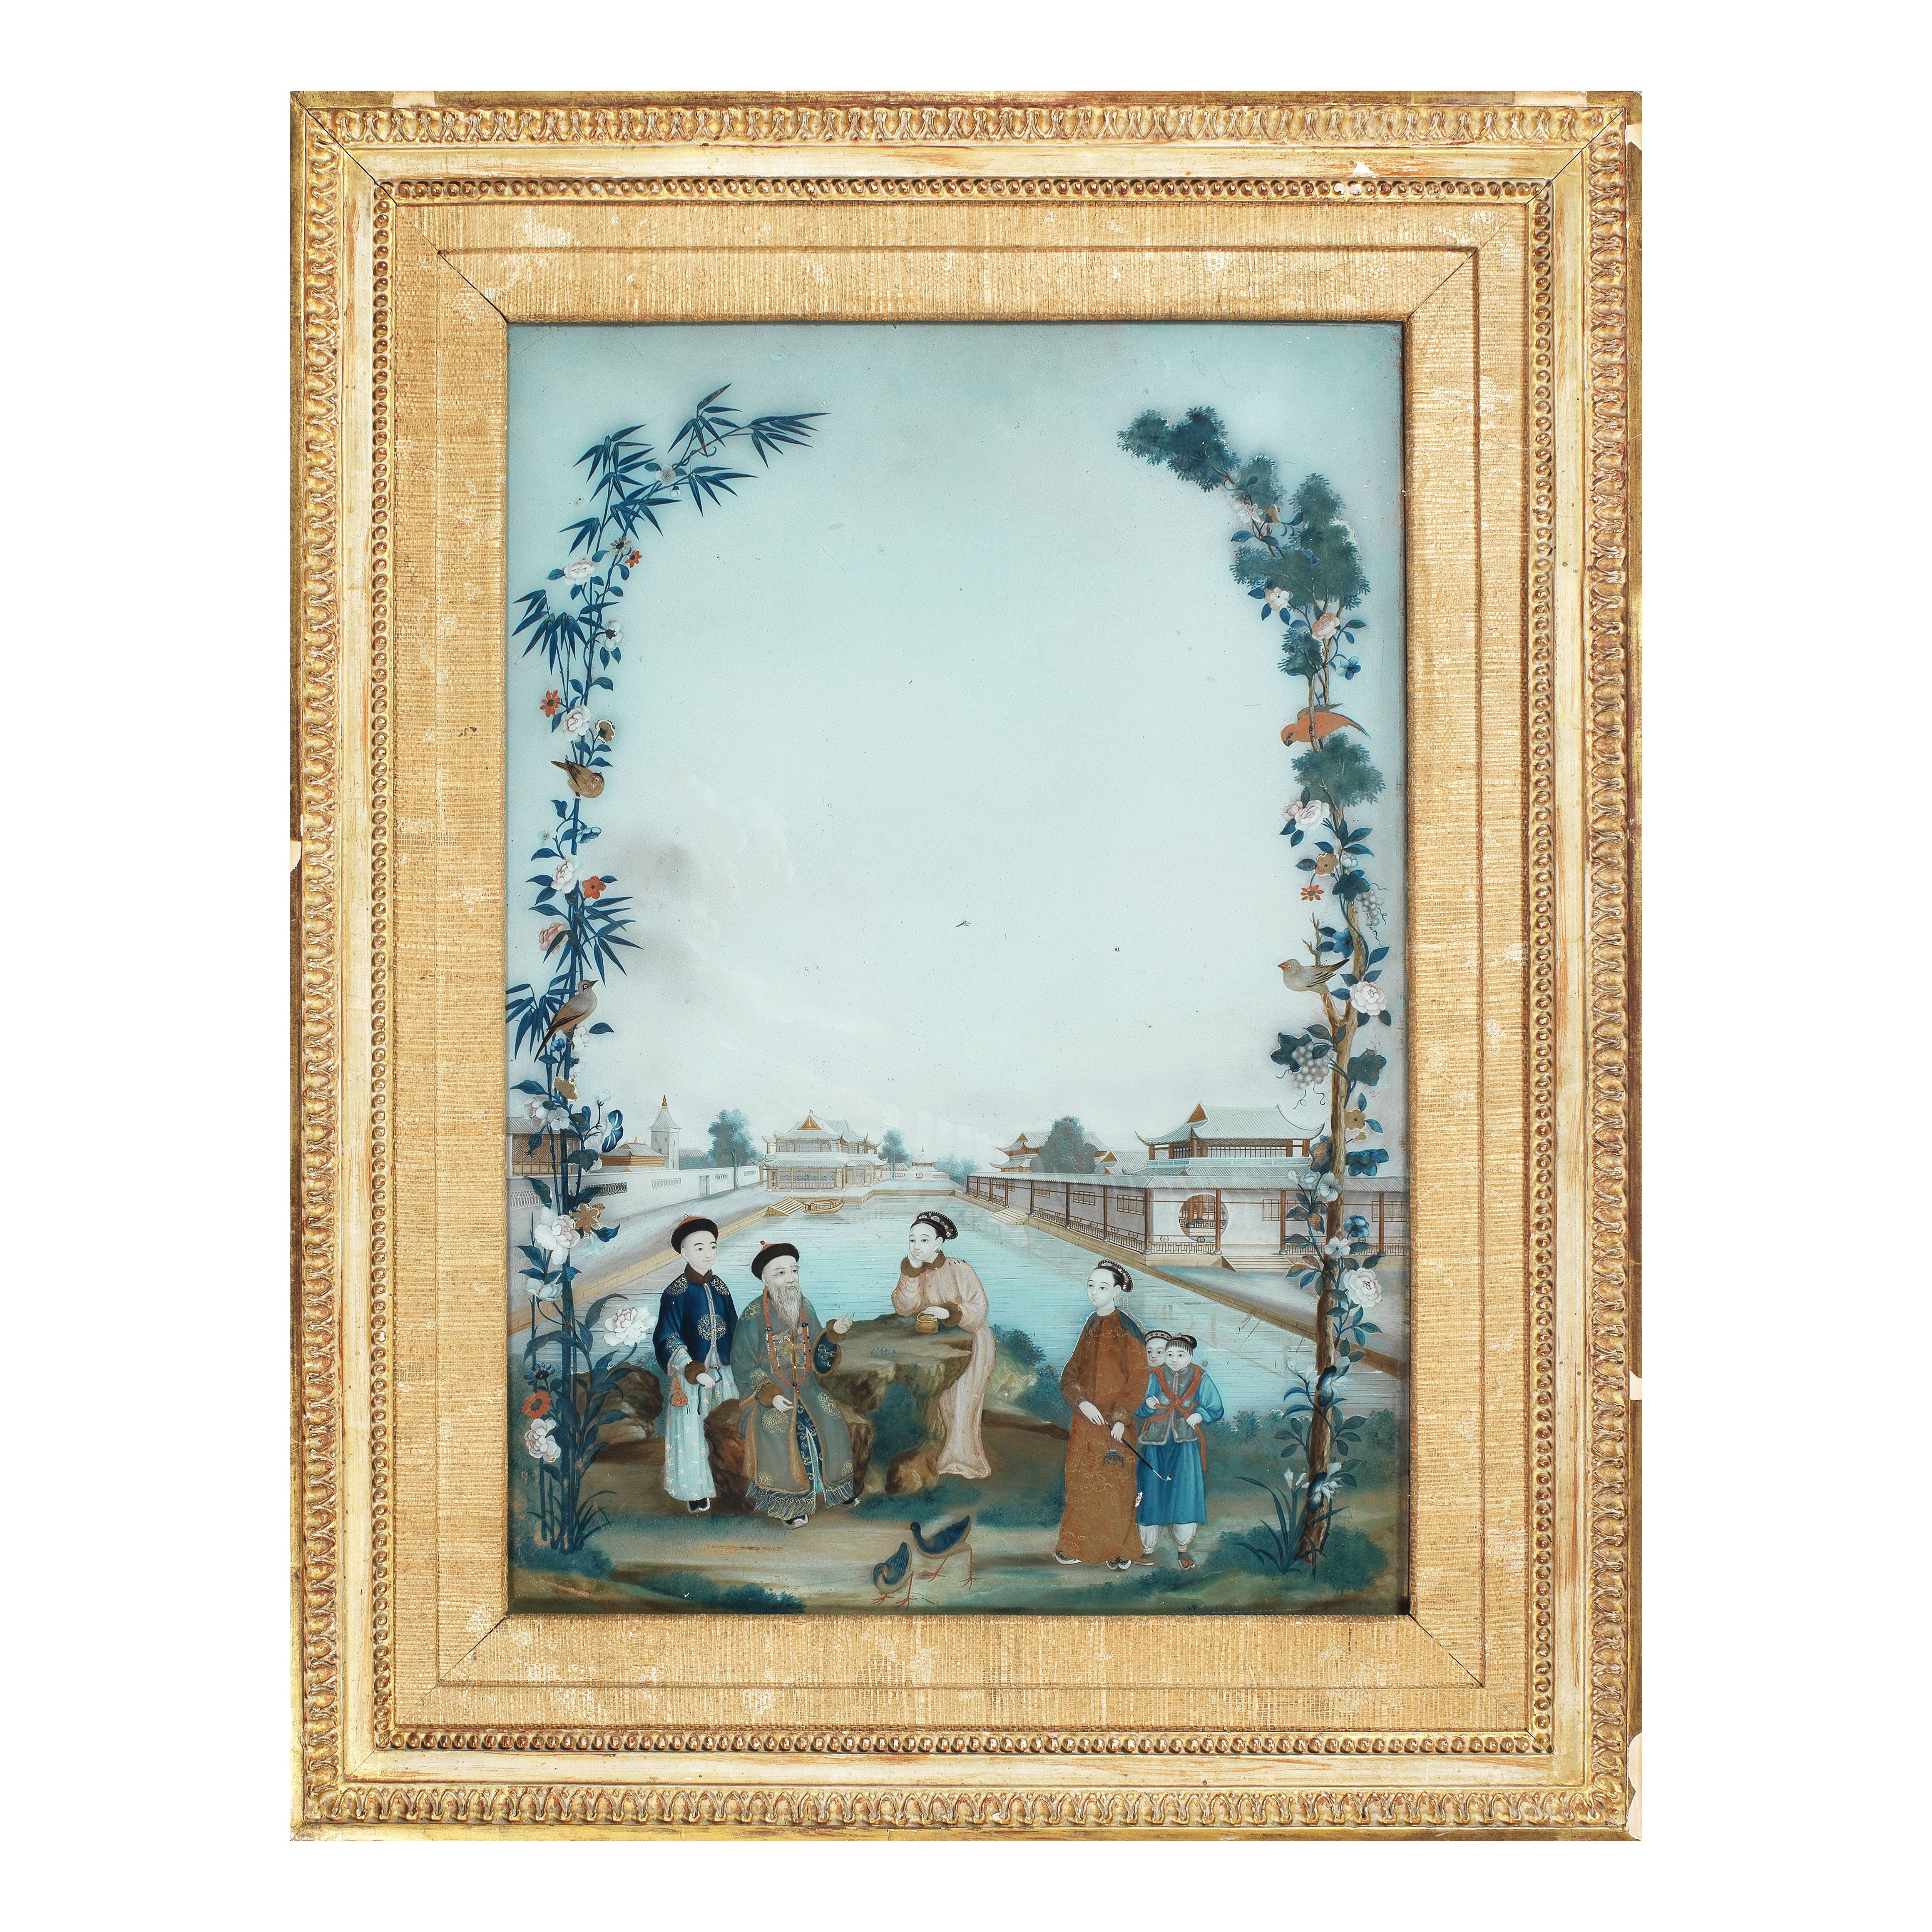 A REVERSE GLASS PAINTING OF OFFICIALS AND LADIES Late 18th century